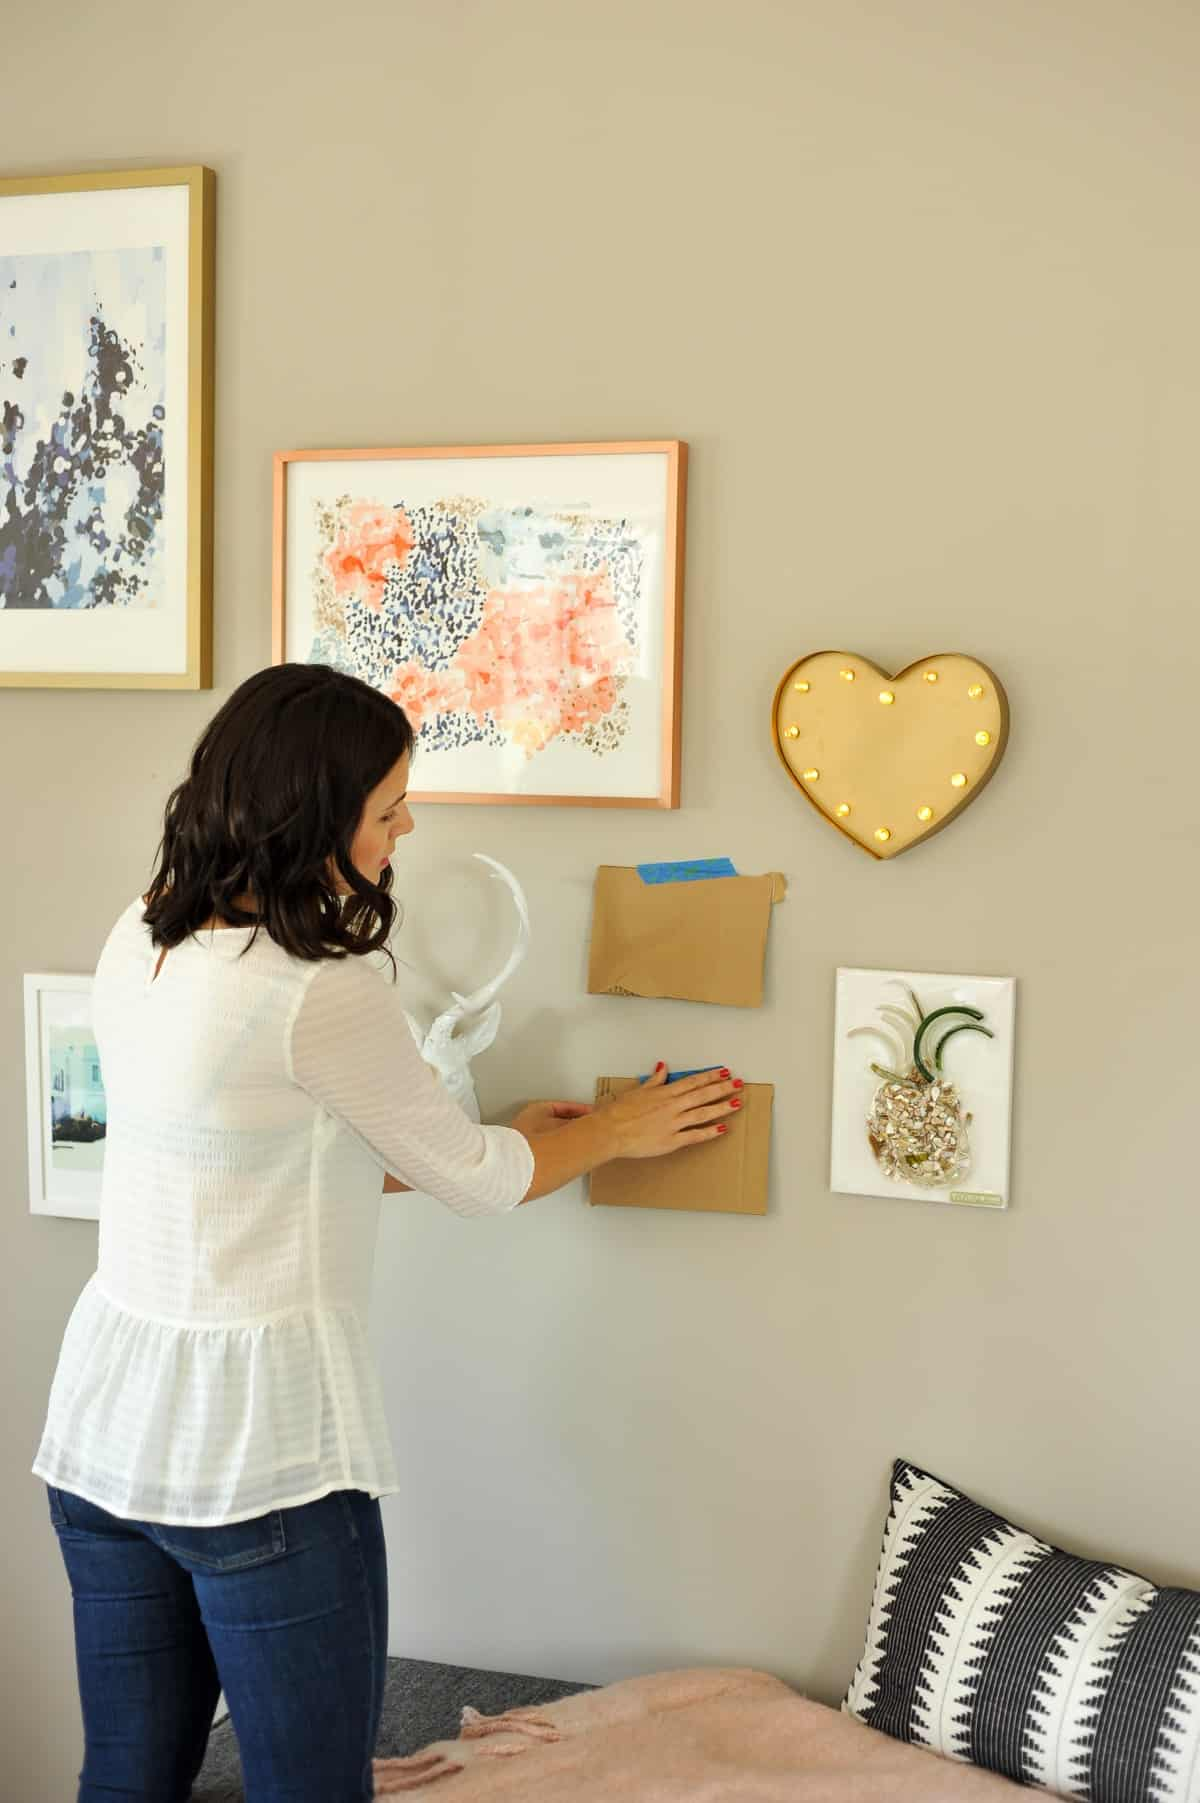 How to hang a gallery wall properly, tips to creating a gallery wall - My Style Vita - @mystylevita - 4